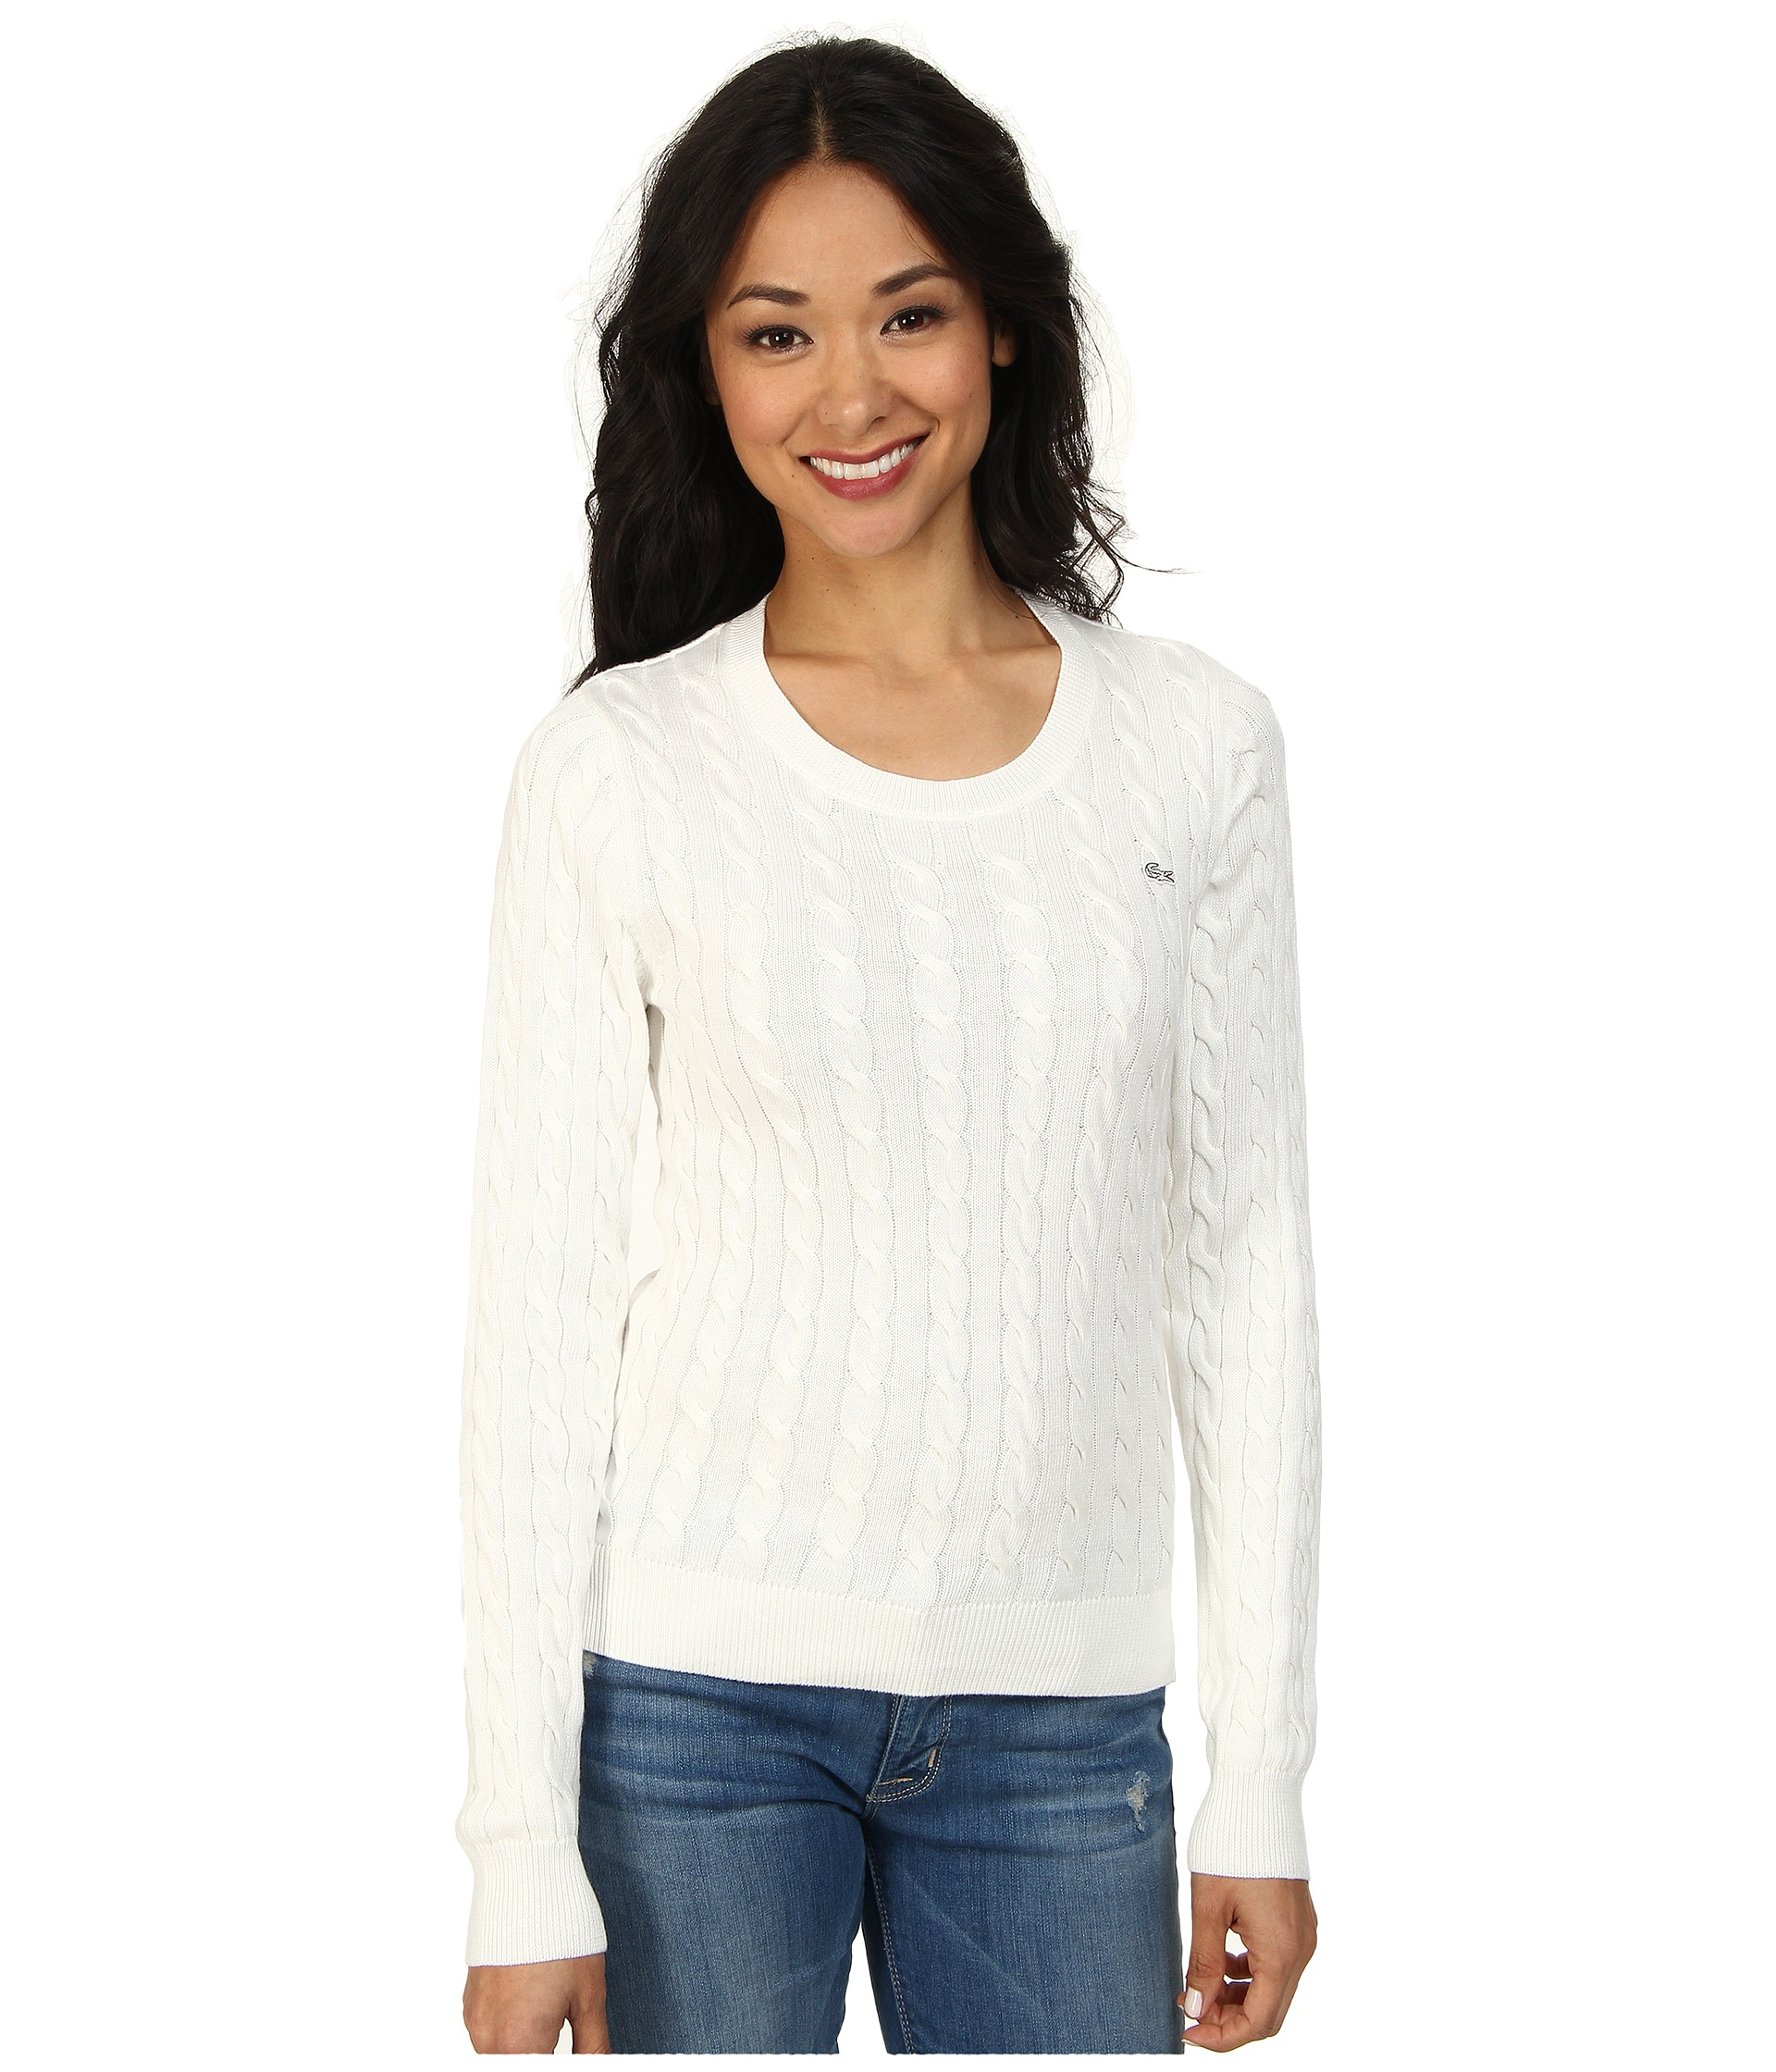 Lacoste Long Sleeve Cotton Cable Knit Sweater in White | Lyst